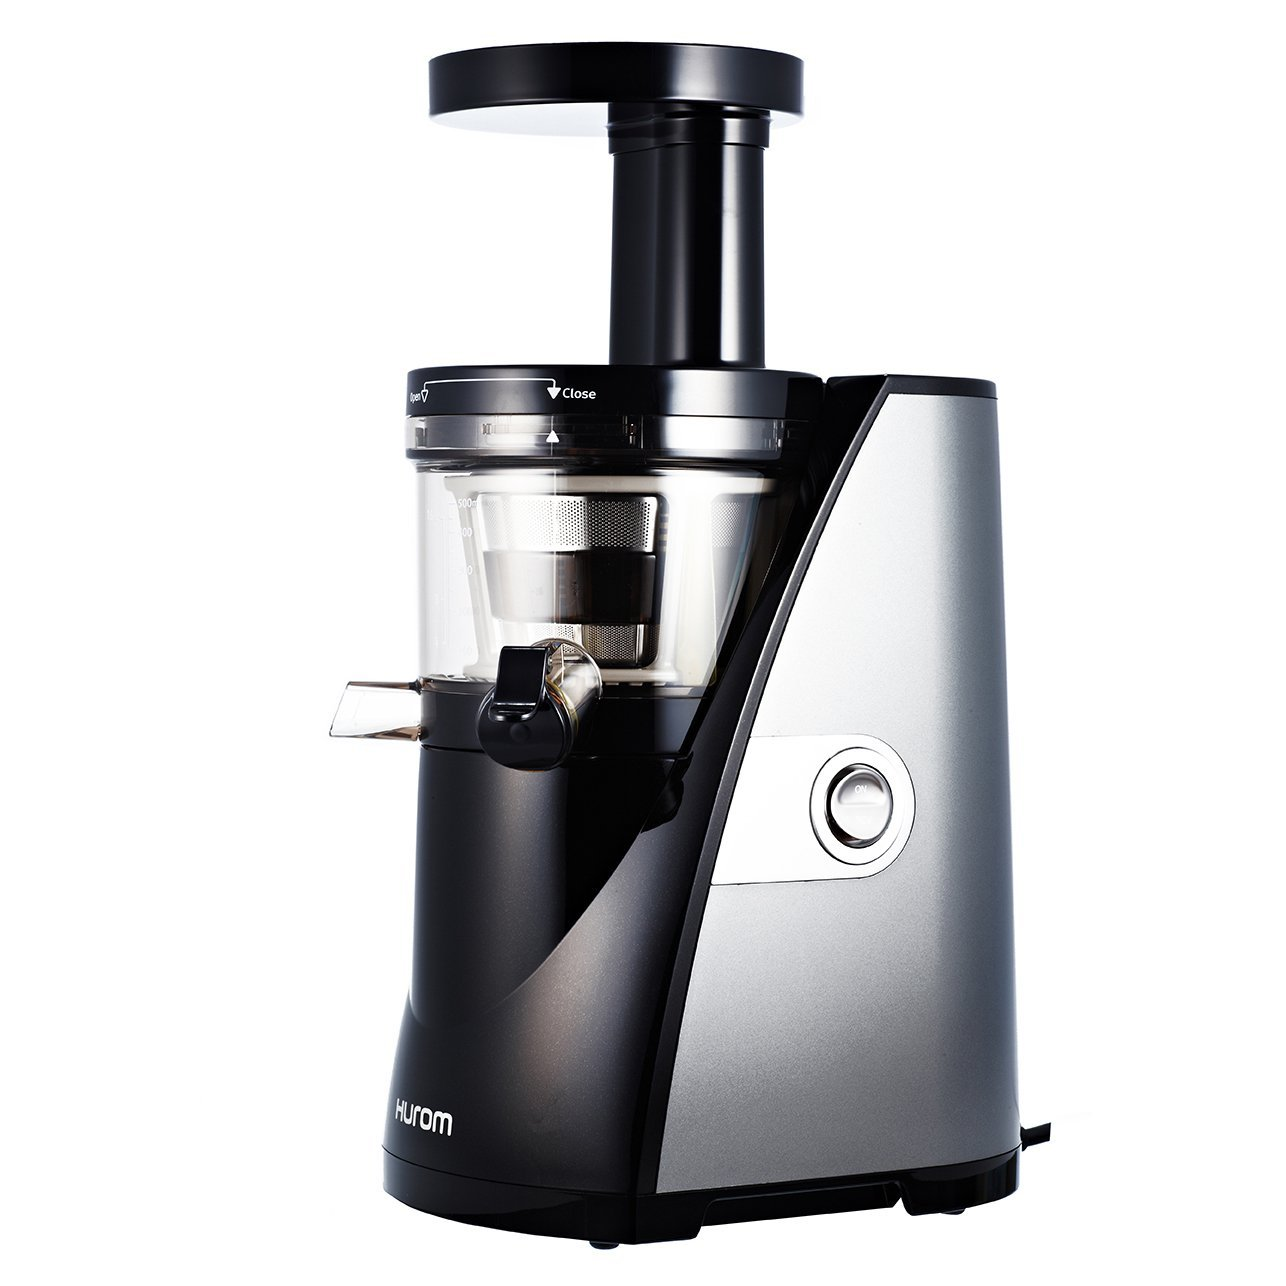 Top Masticating Juicer Reviews : 5 Best Hurom Juicer Reviews UPDATED: 2018 The Home Savant